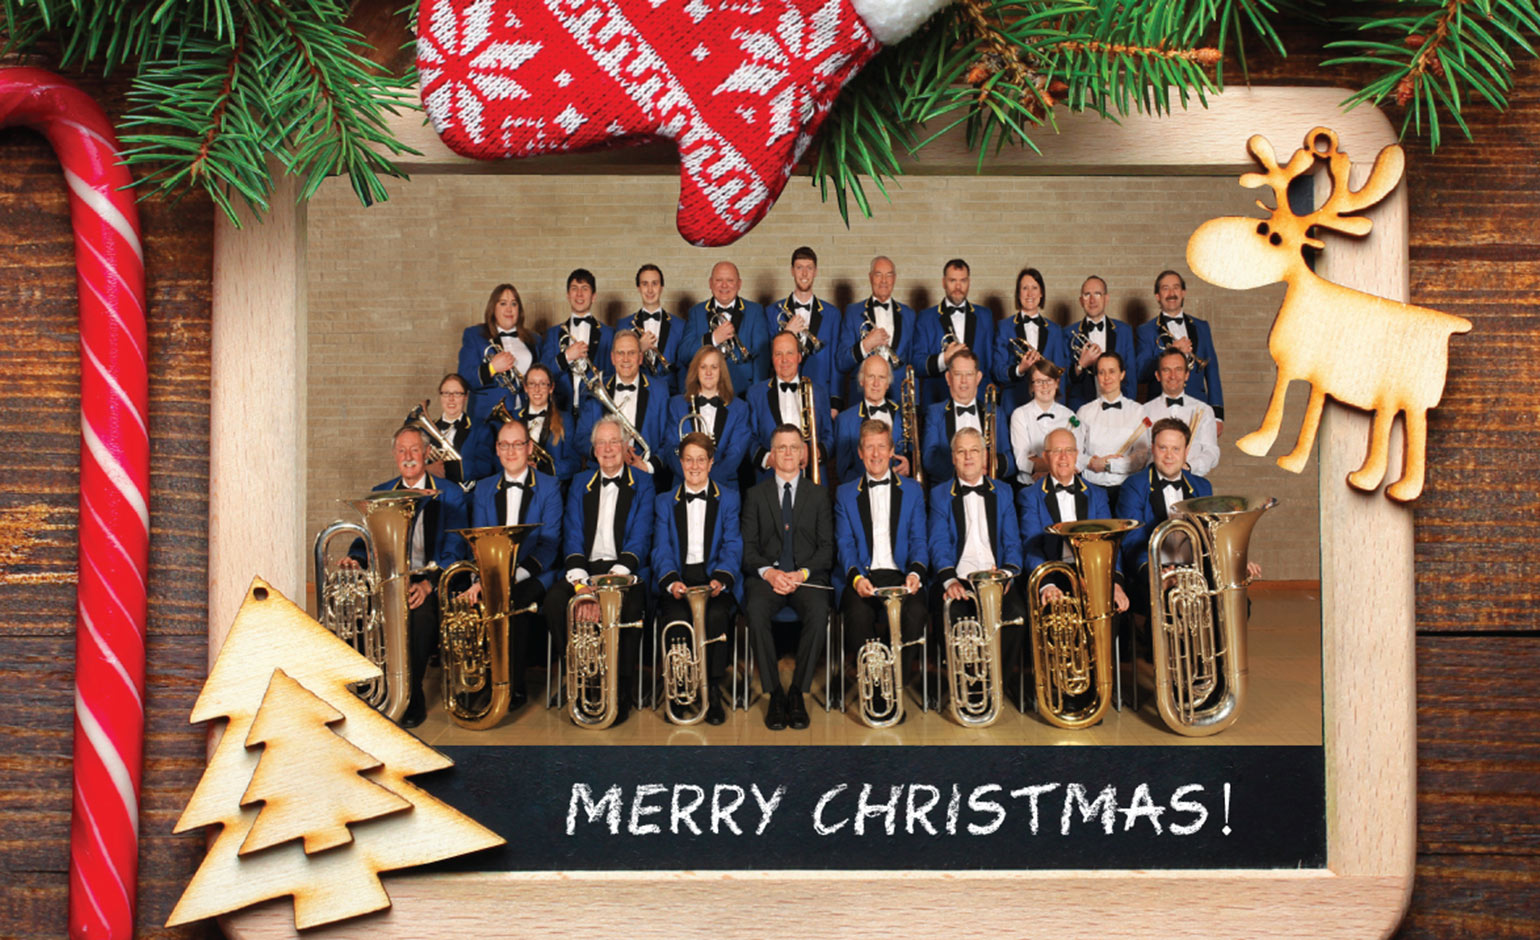 Bath Spa Band to hold Christmas Concert at St Michael's Without in Bath